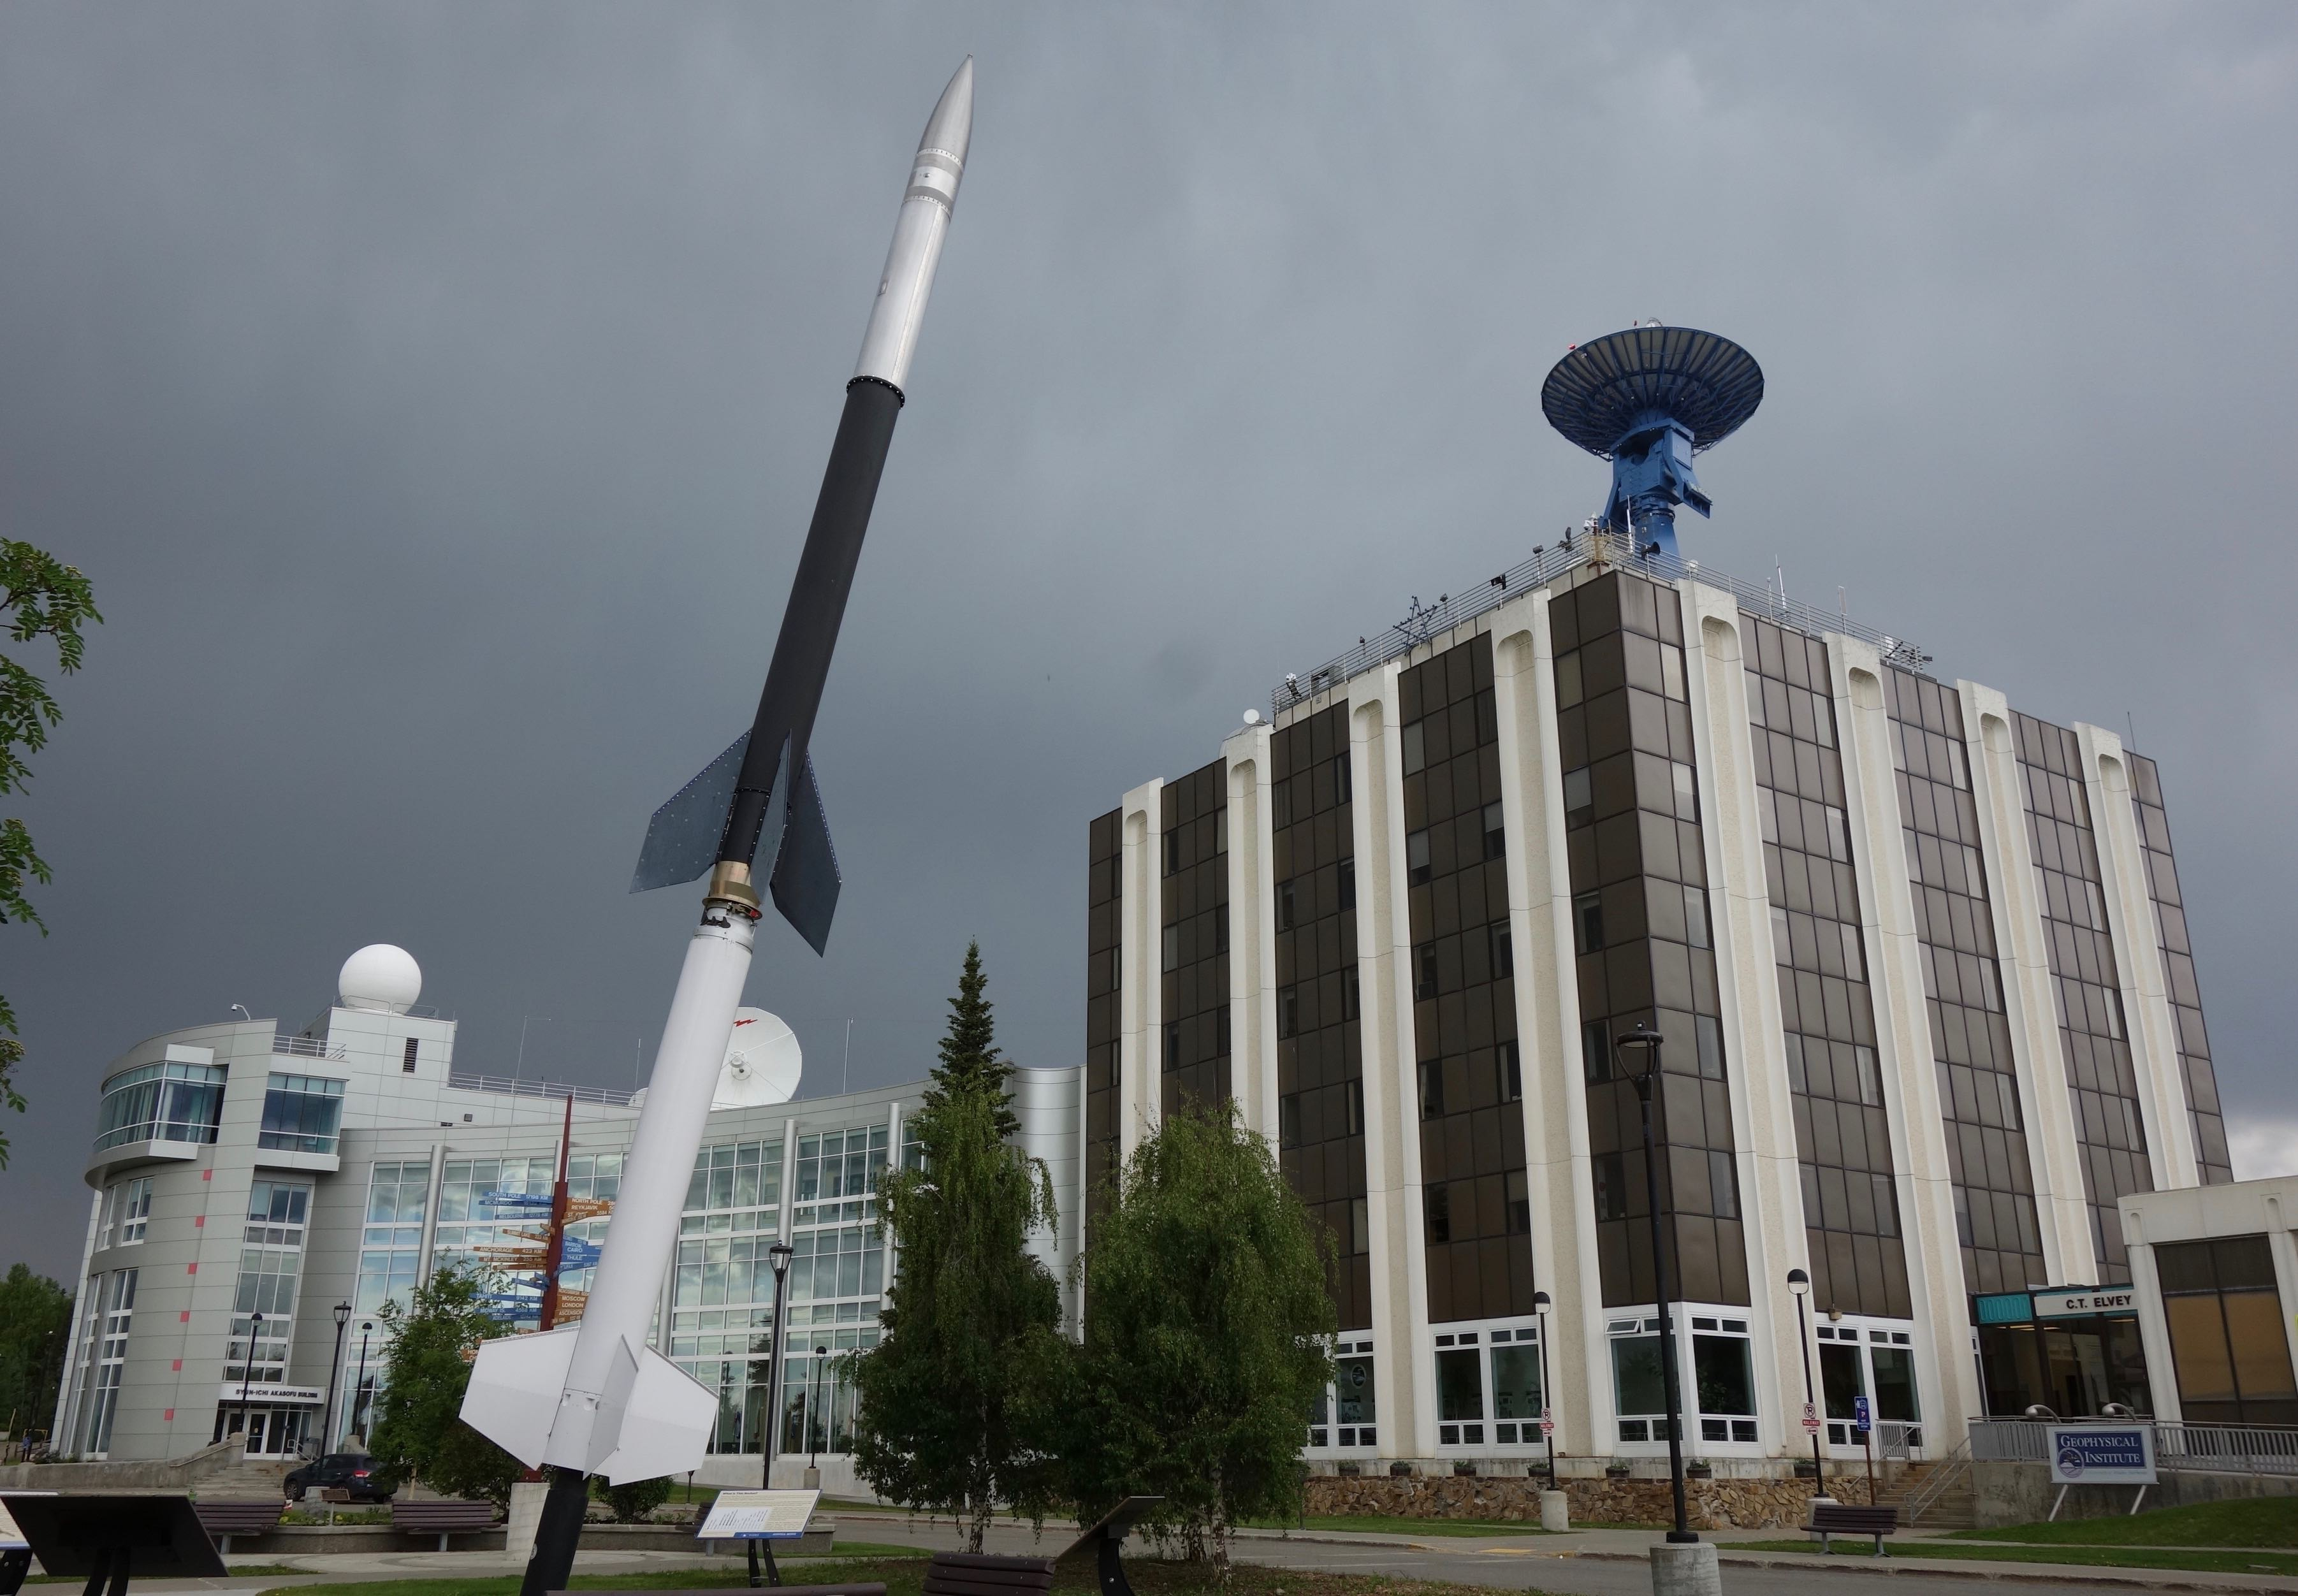 A rocket sits on display on a lawn in front of a seven-story office building with a satellite dish on top.